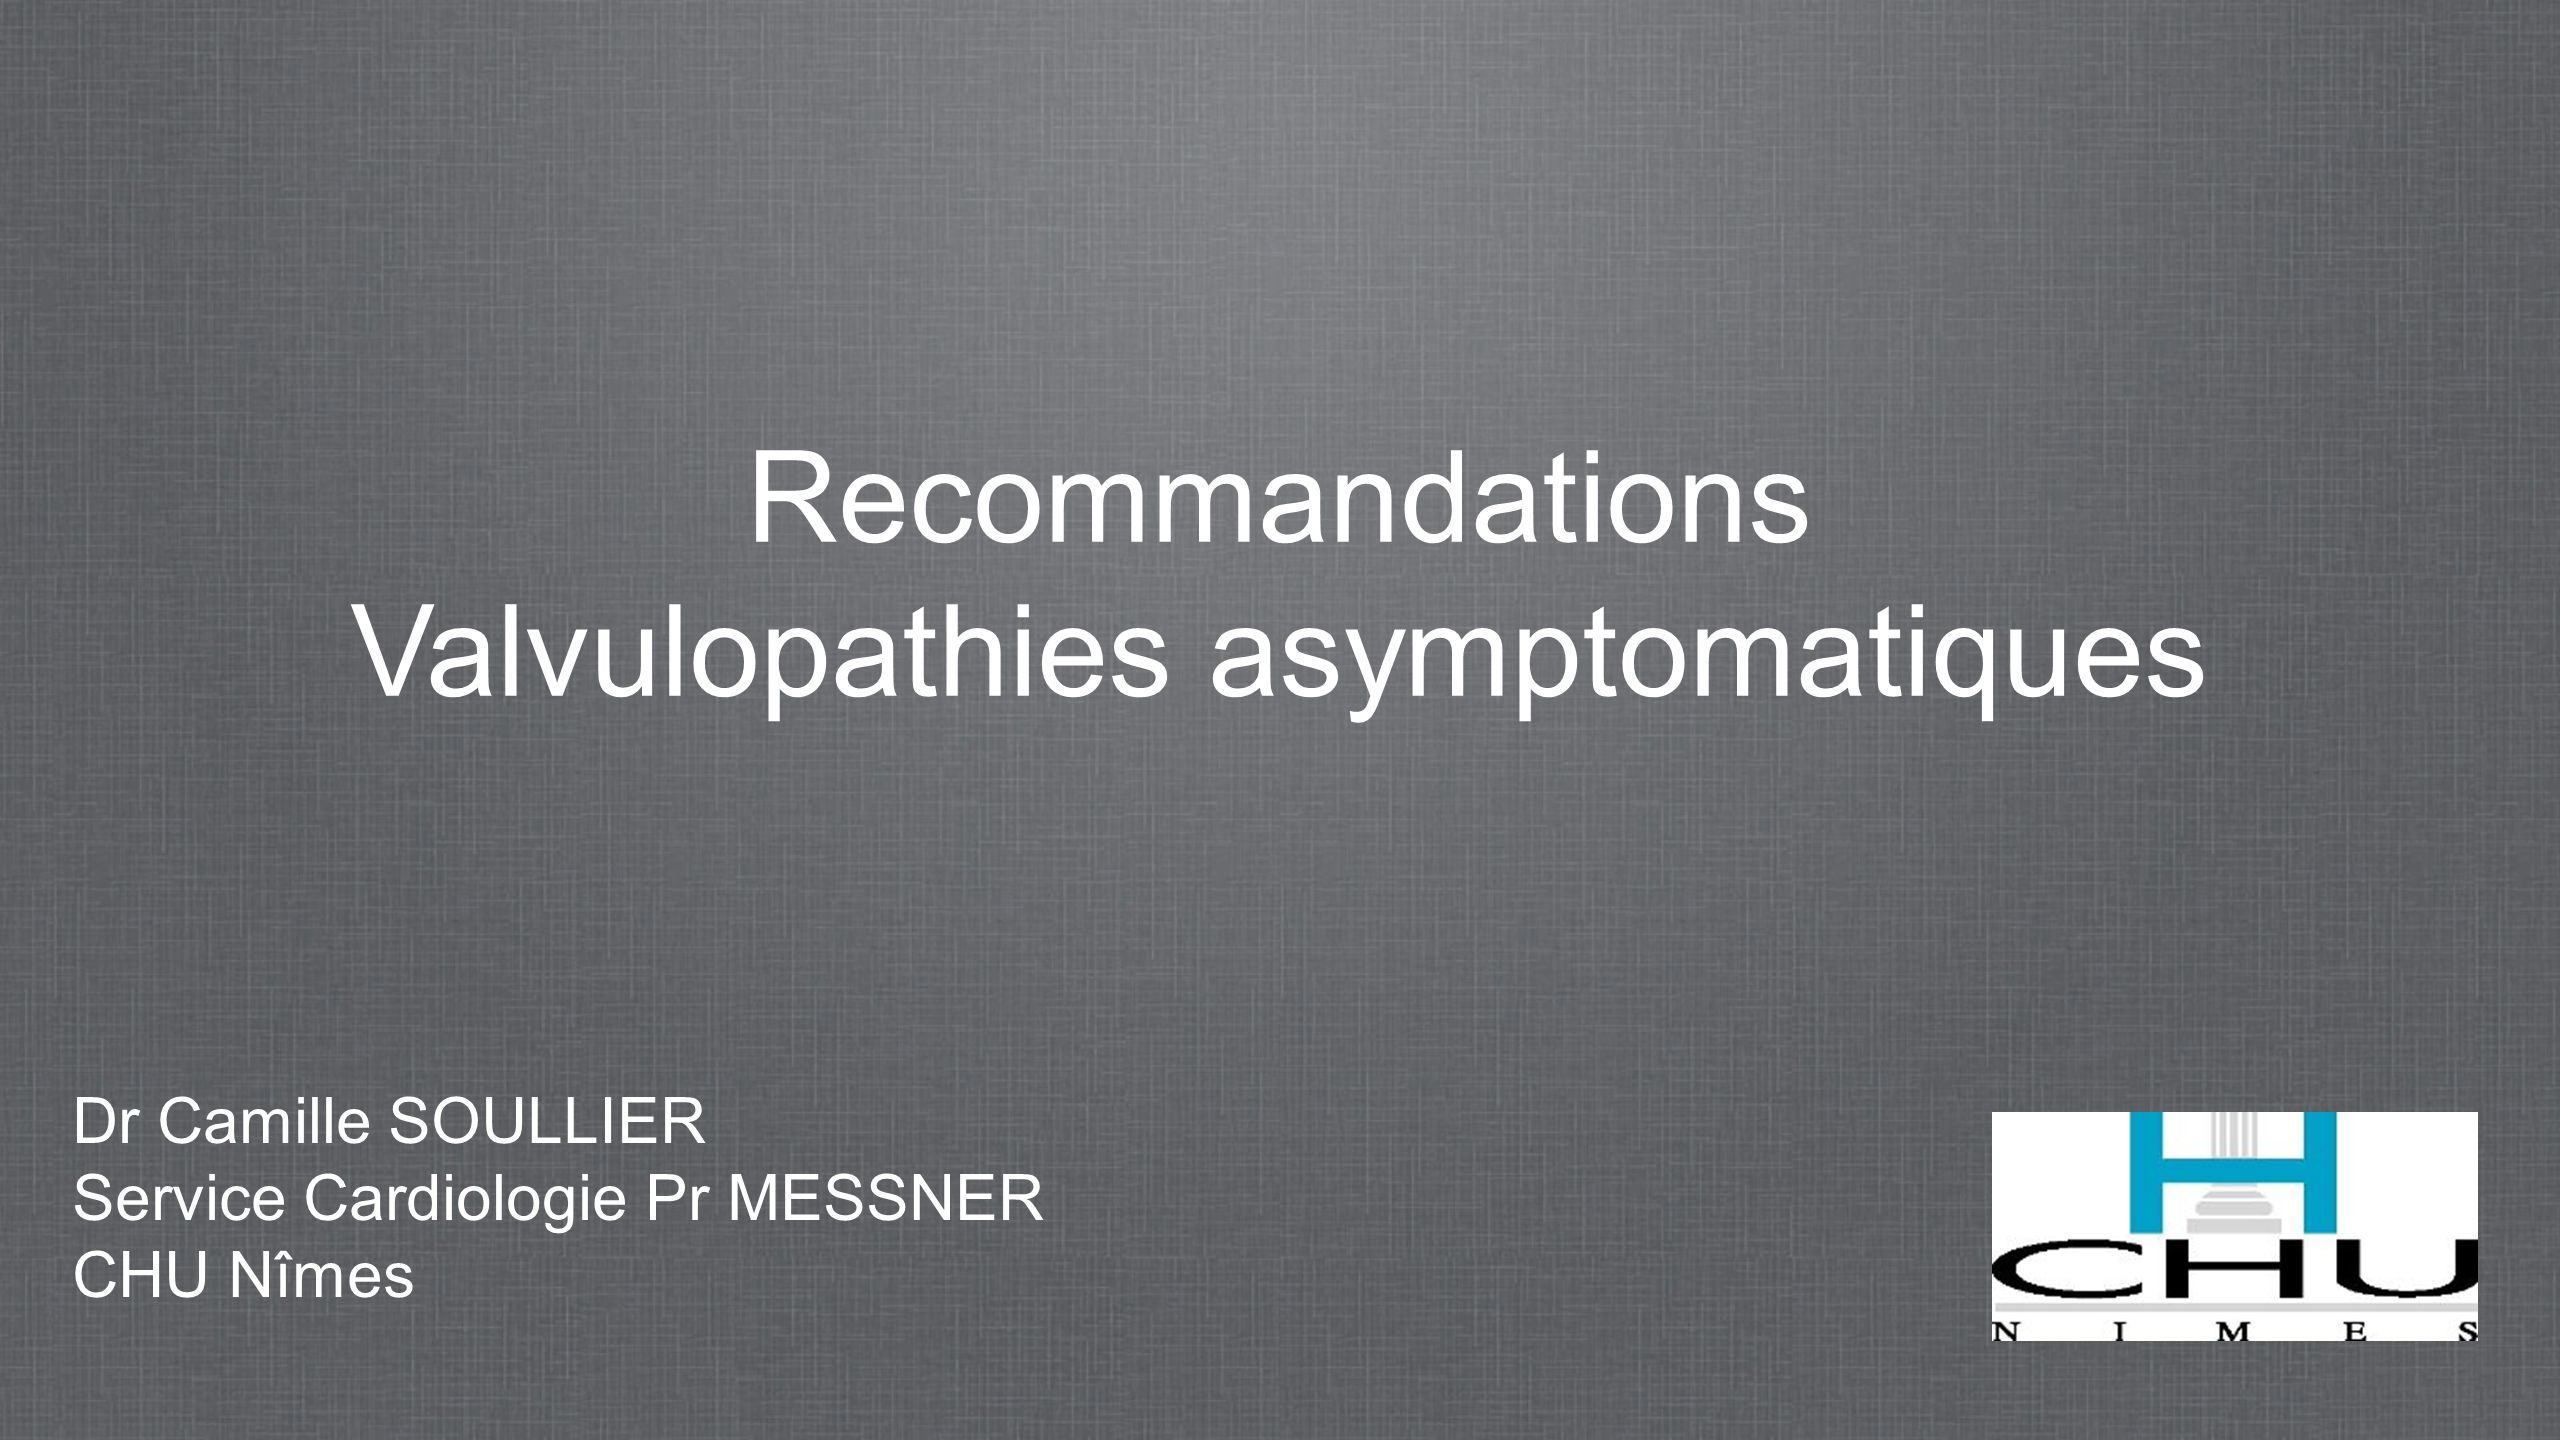 Valvulopathies asymptomatiques